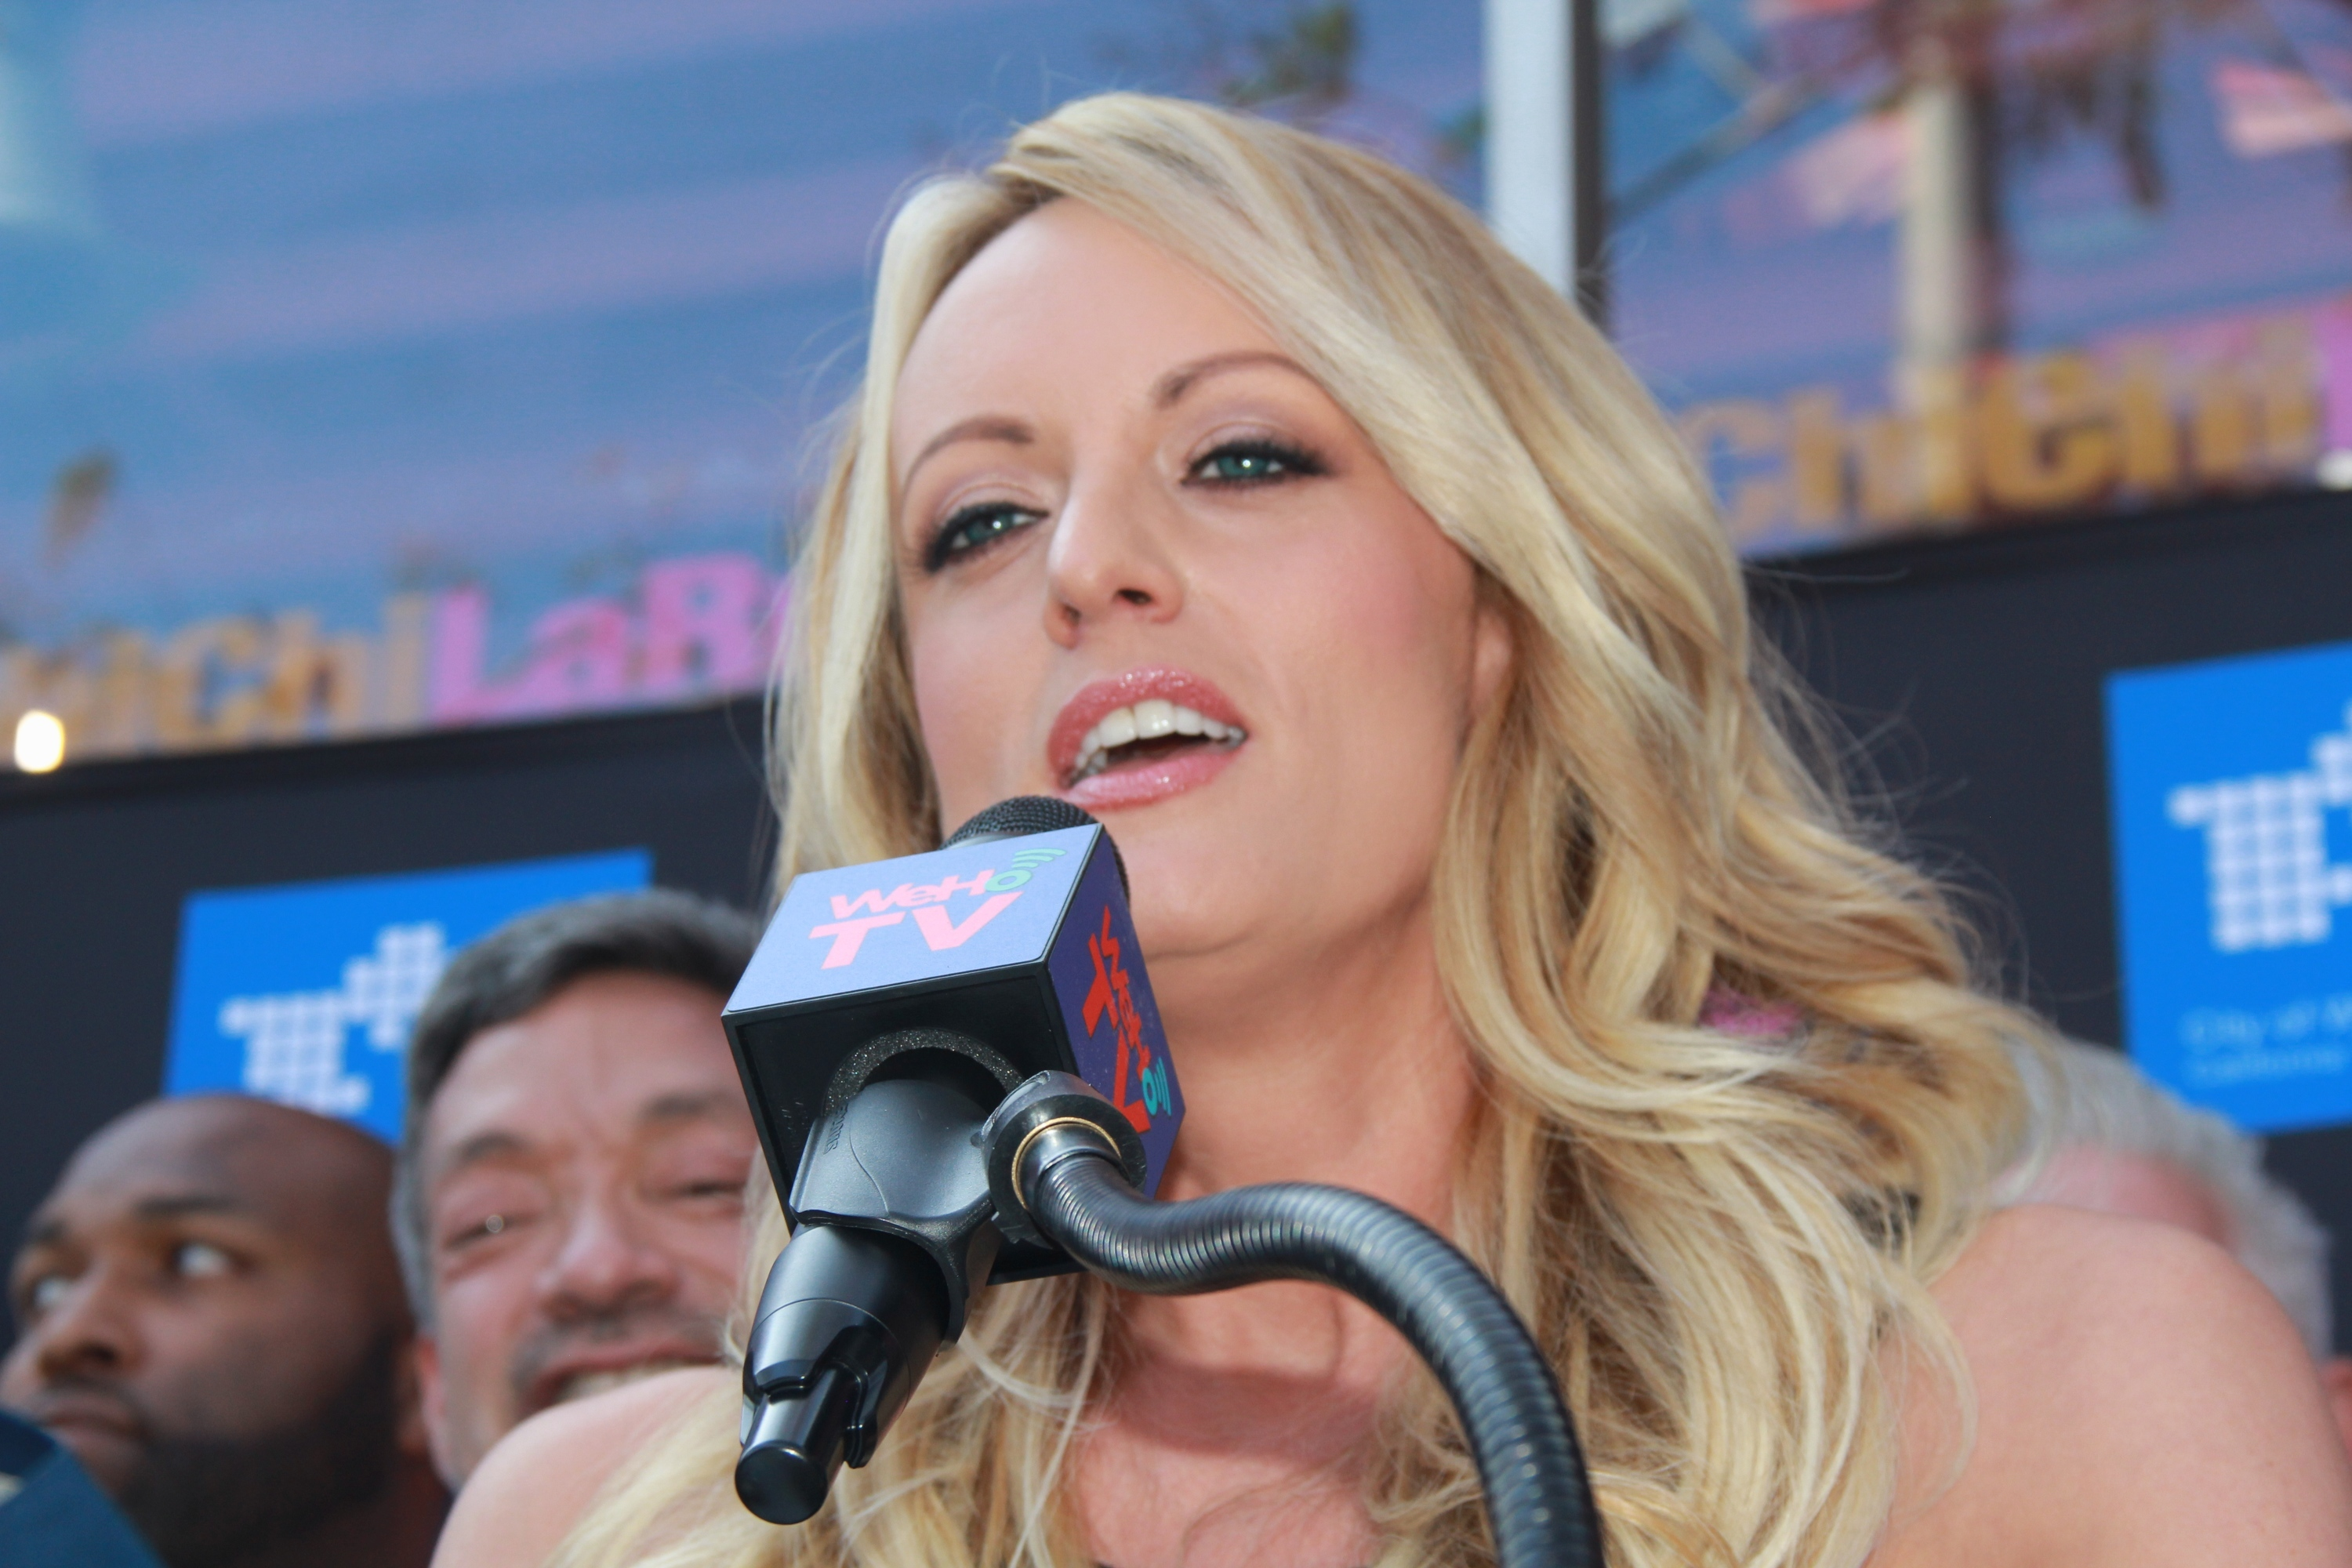 Stormy Daniel's description of Trump's penis ruins Mario games forever